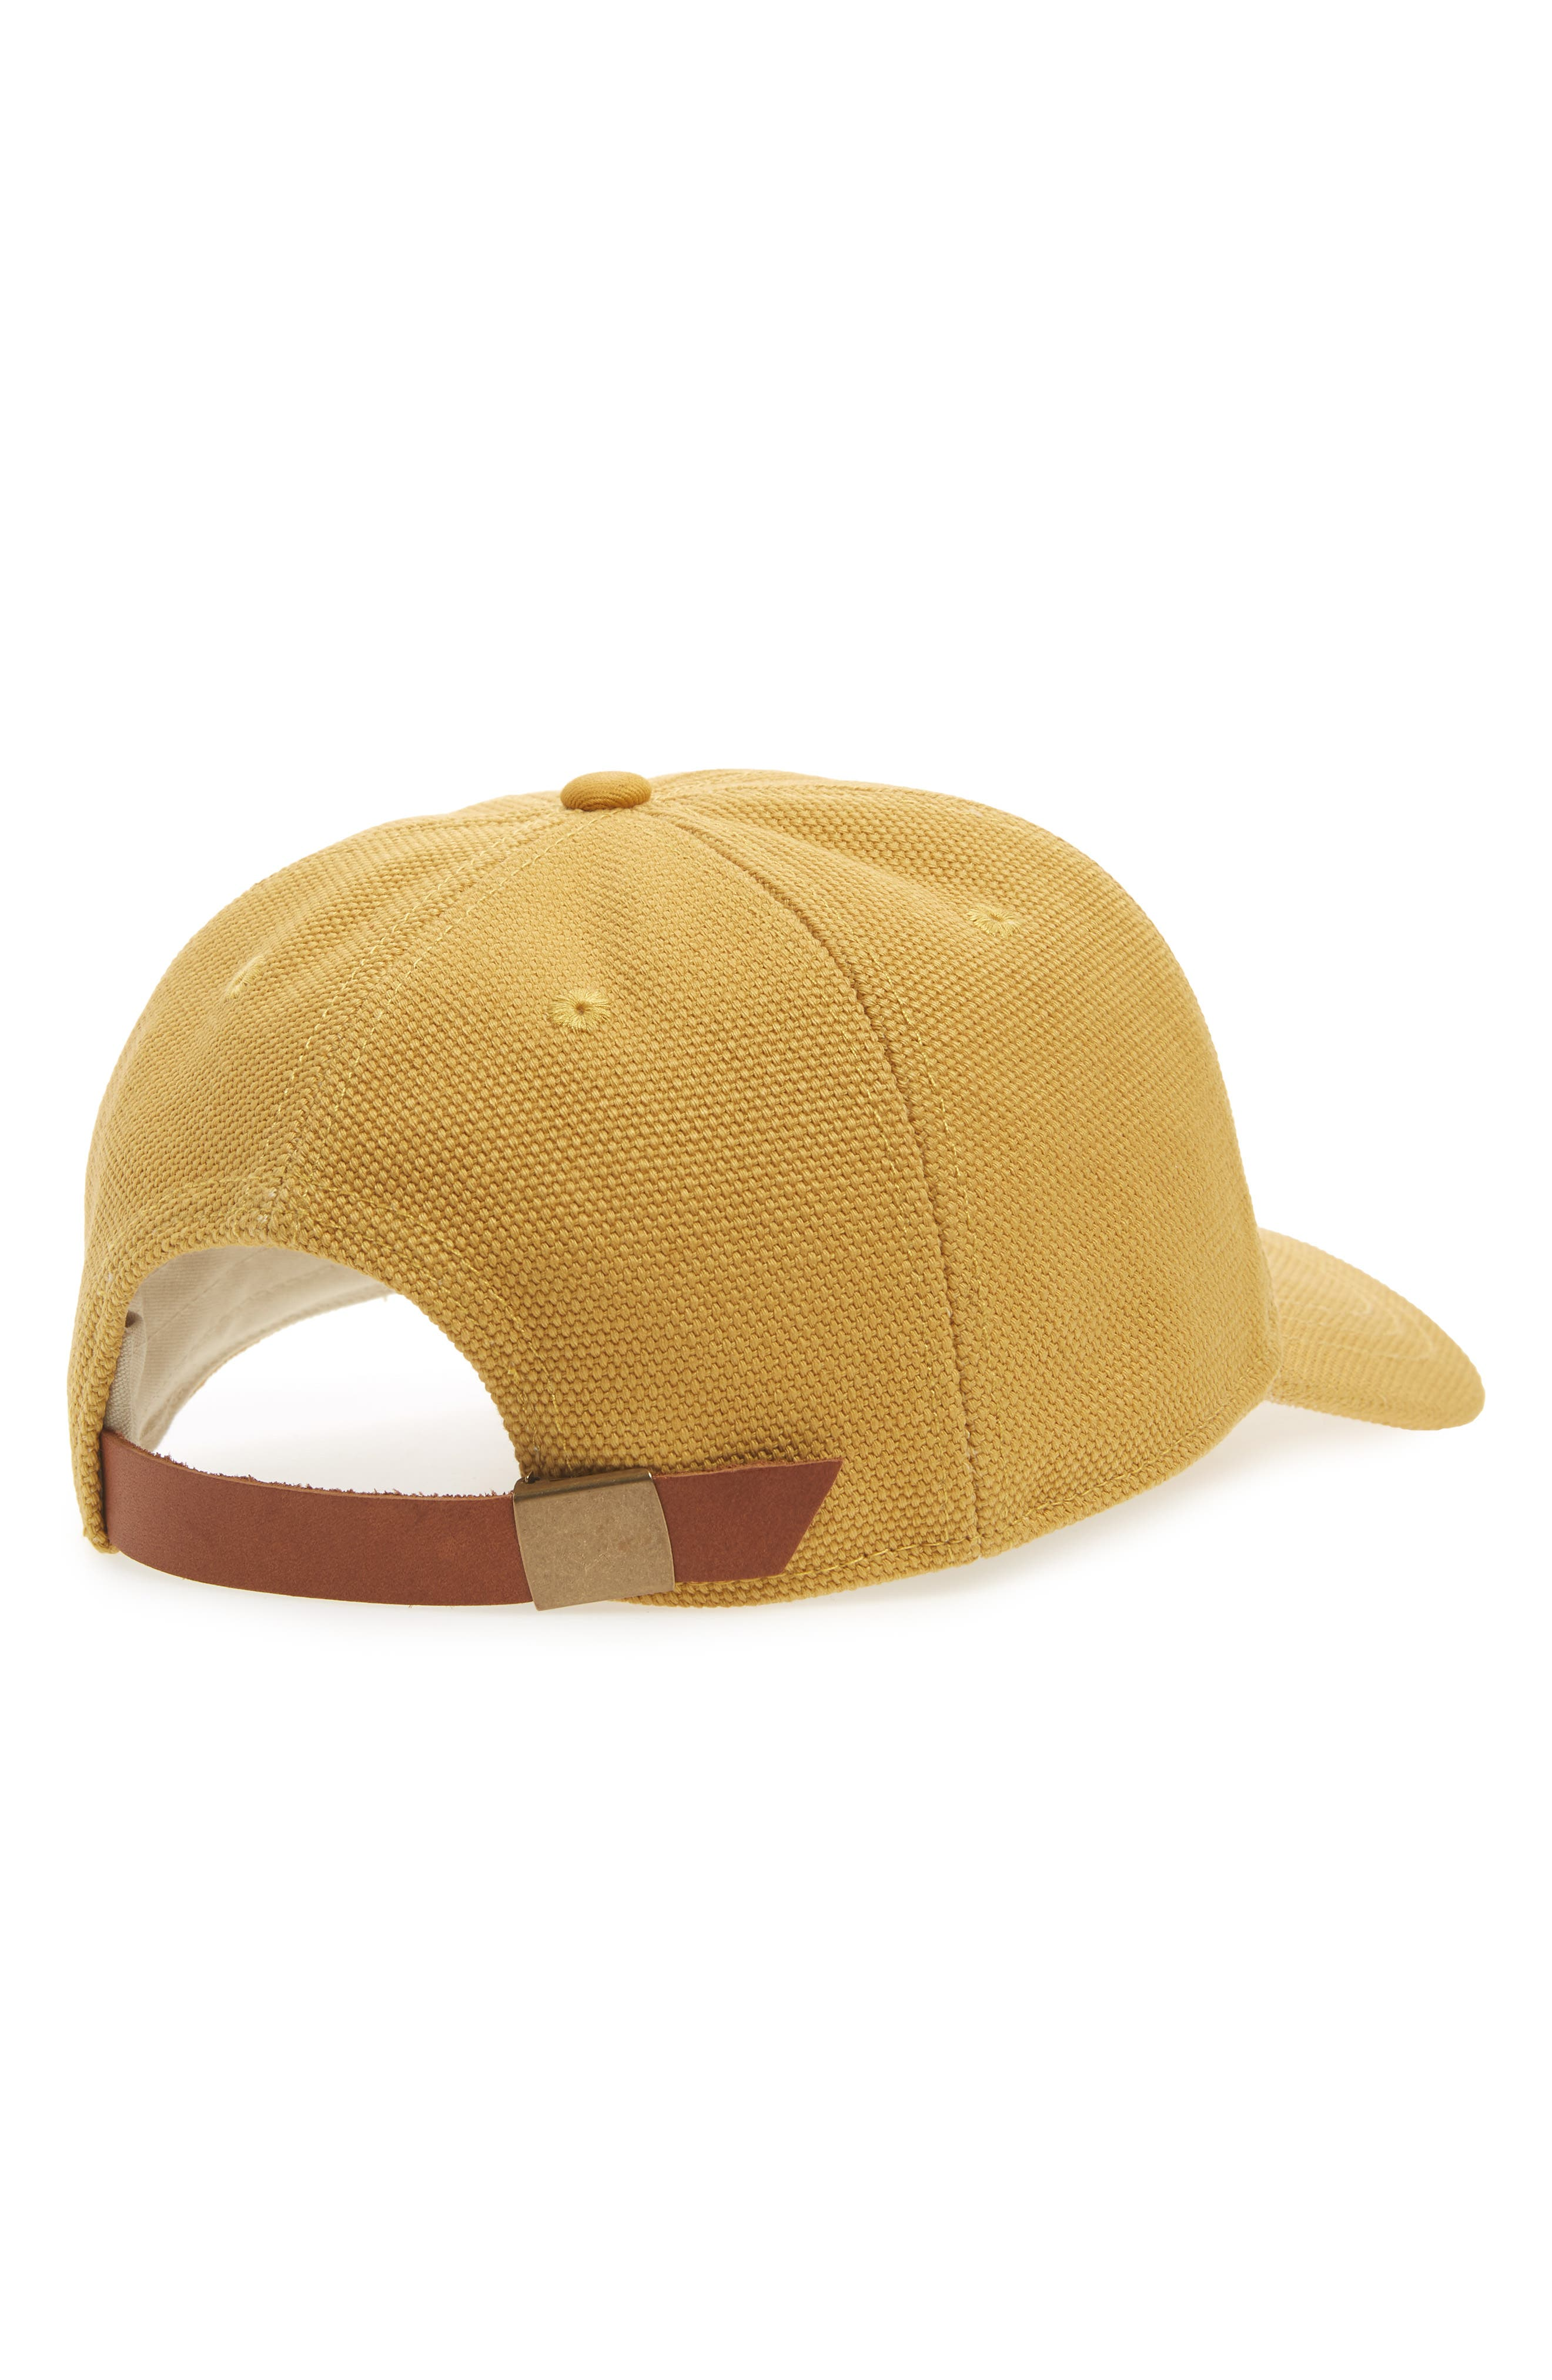 Canvas Baseball Cap,                             Alternate thumbnail 2, color,                             250